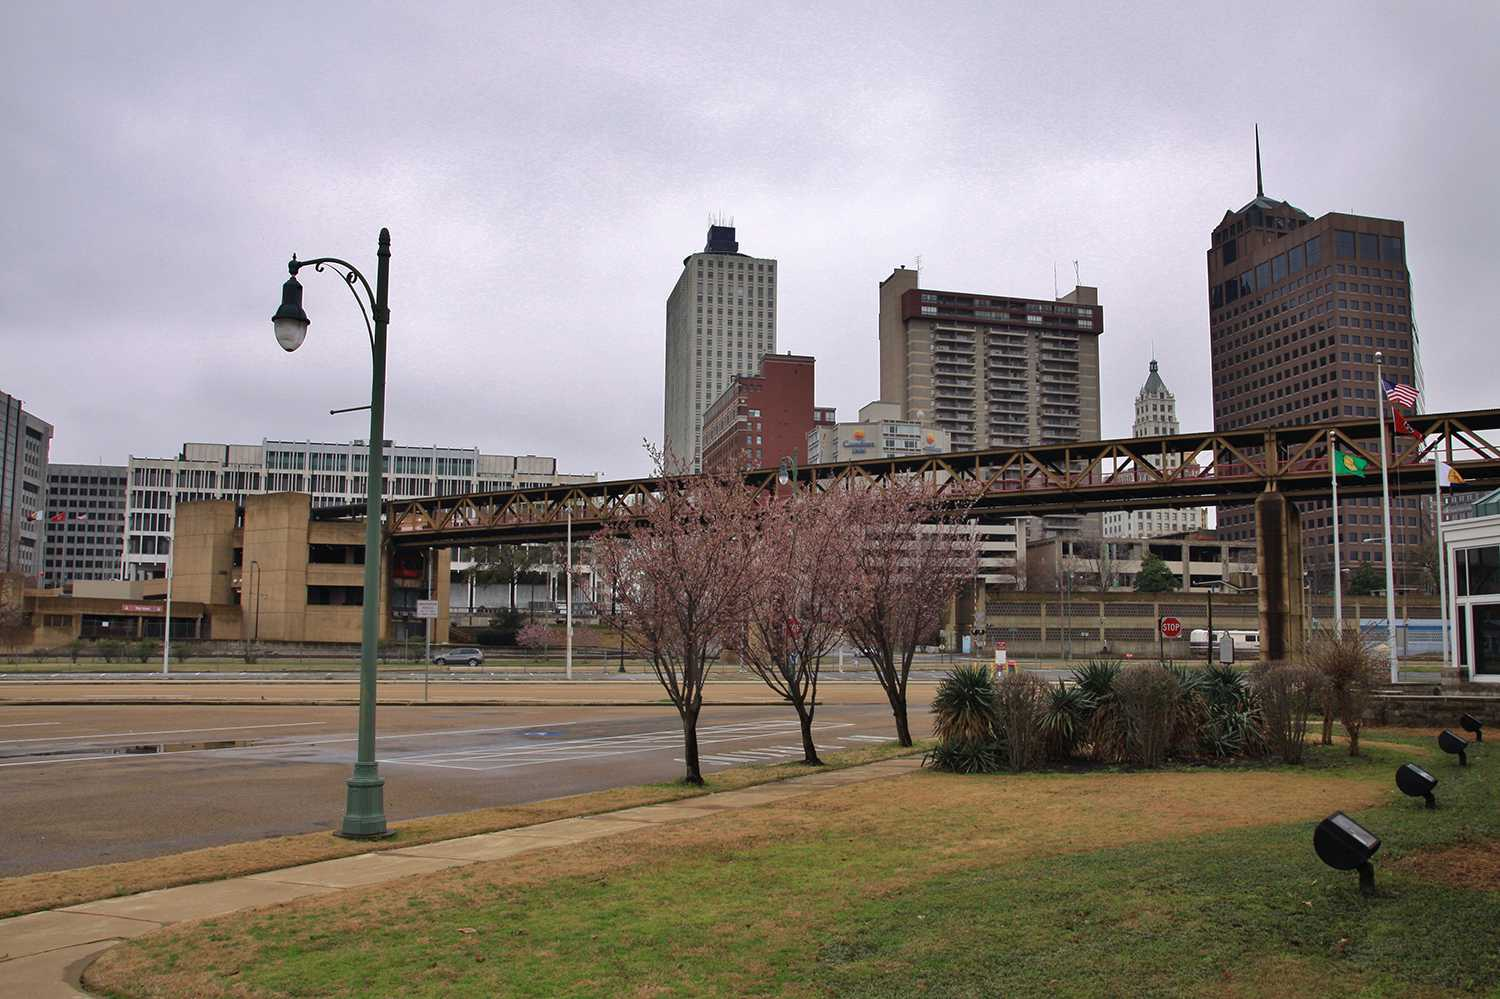 Overhead Monorail for the Mud Island River Park